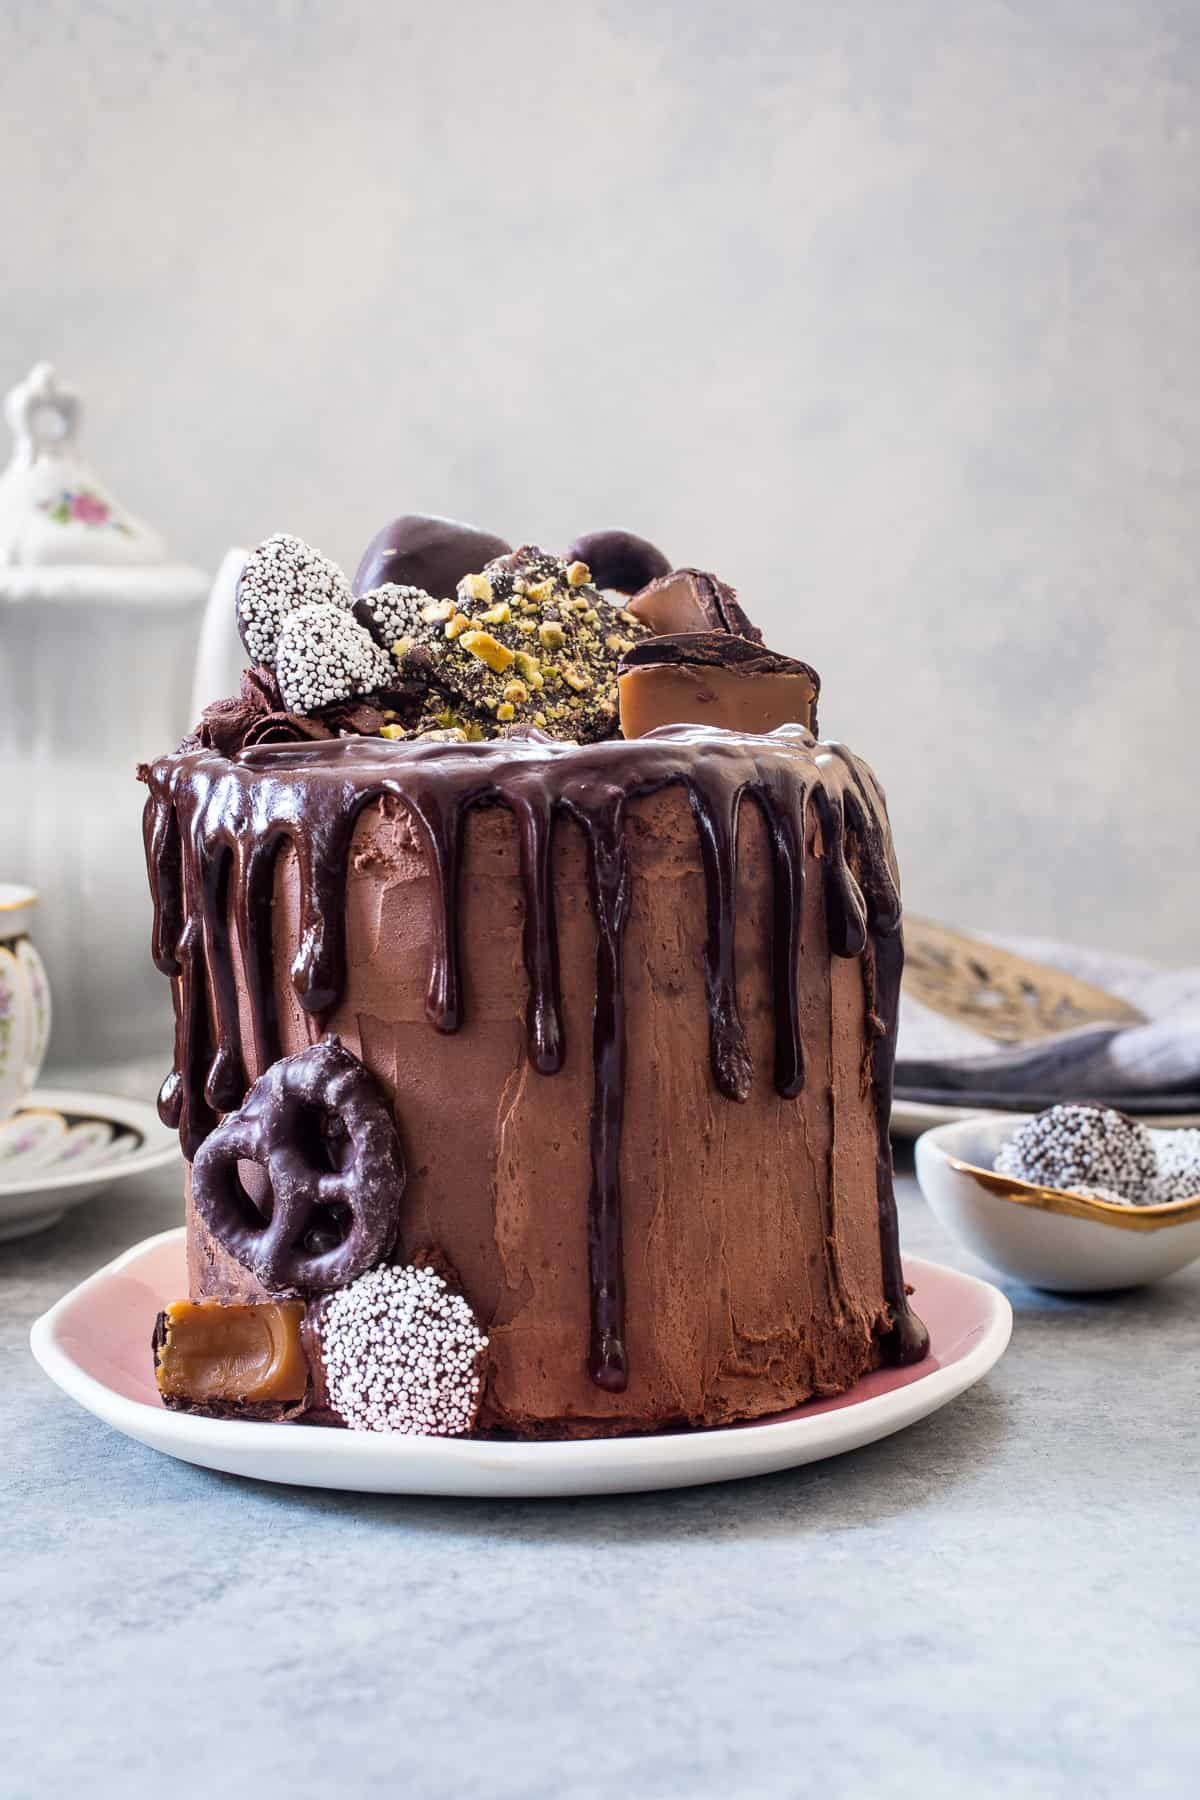 This Triple Chocolate Mousse Cake Is Small But Mighty This 4 Inch Cake Is Filled With Chocolate Cake Layers Chocolate Mousse And Finished Off With